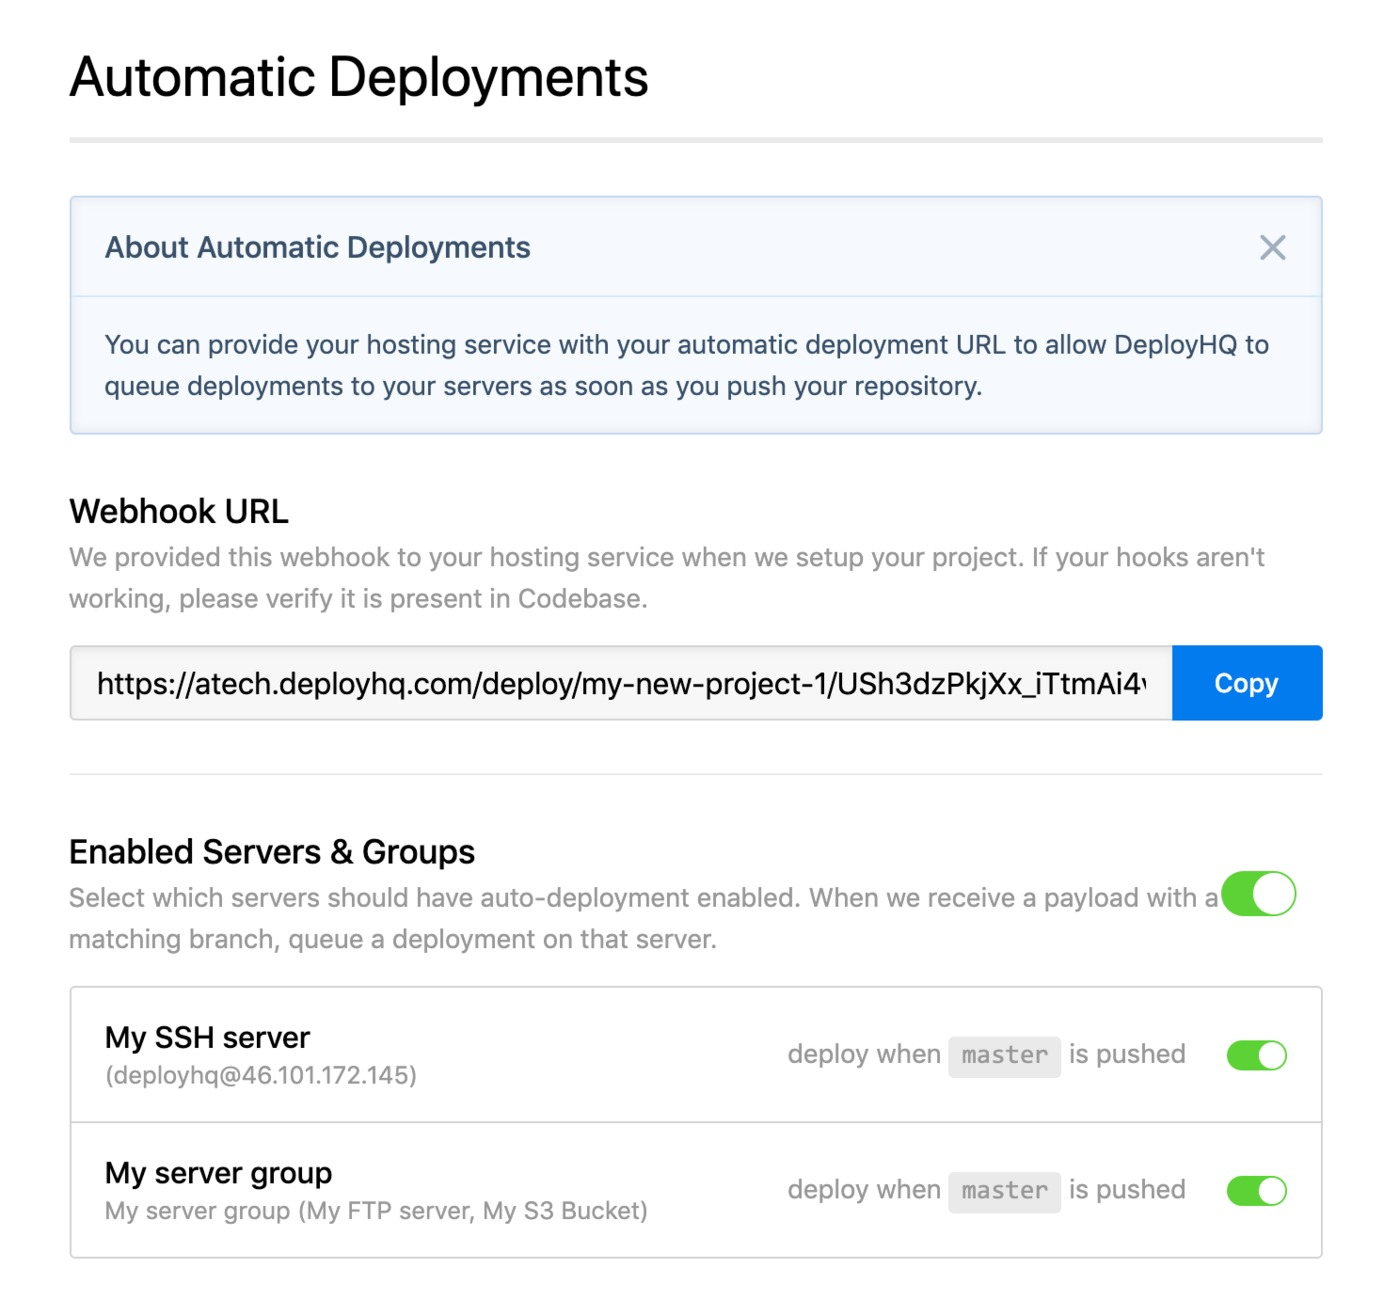 Server group automatic deployments